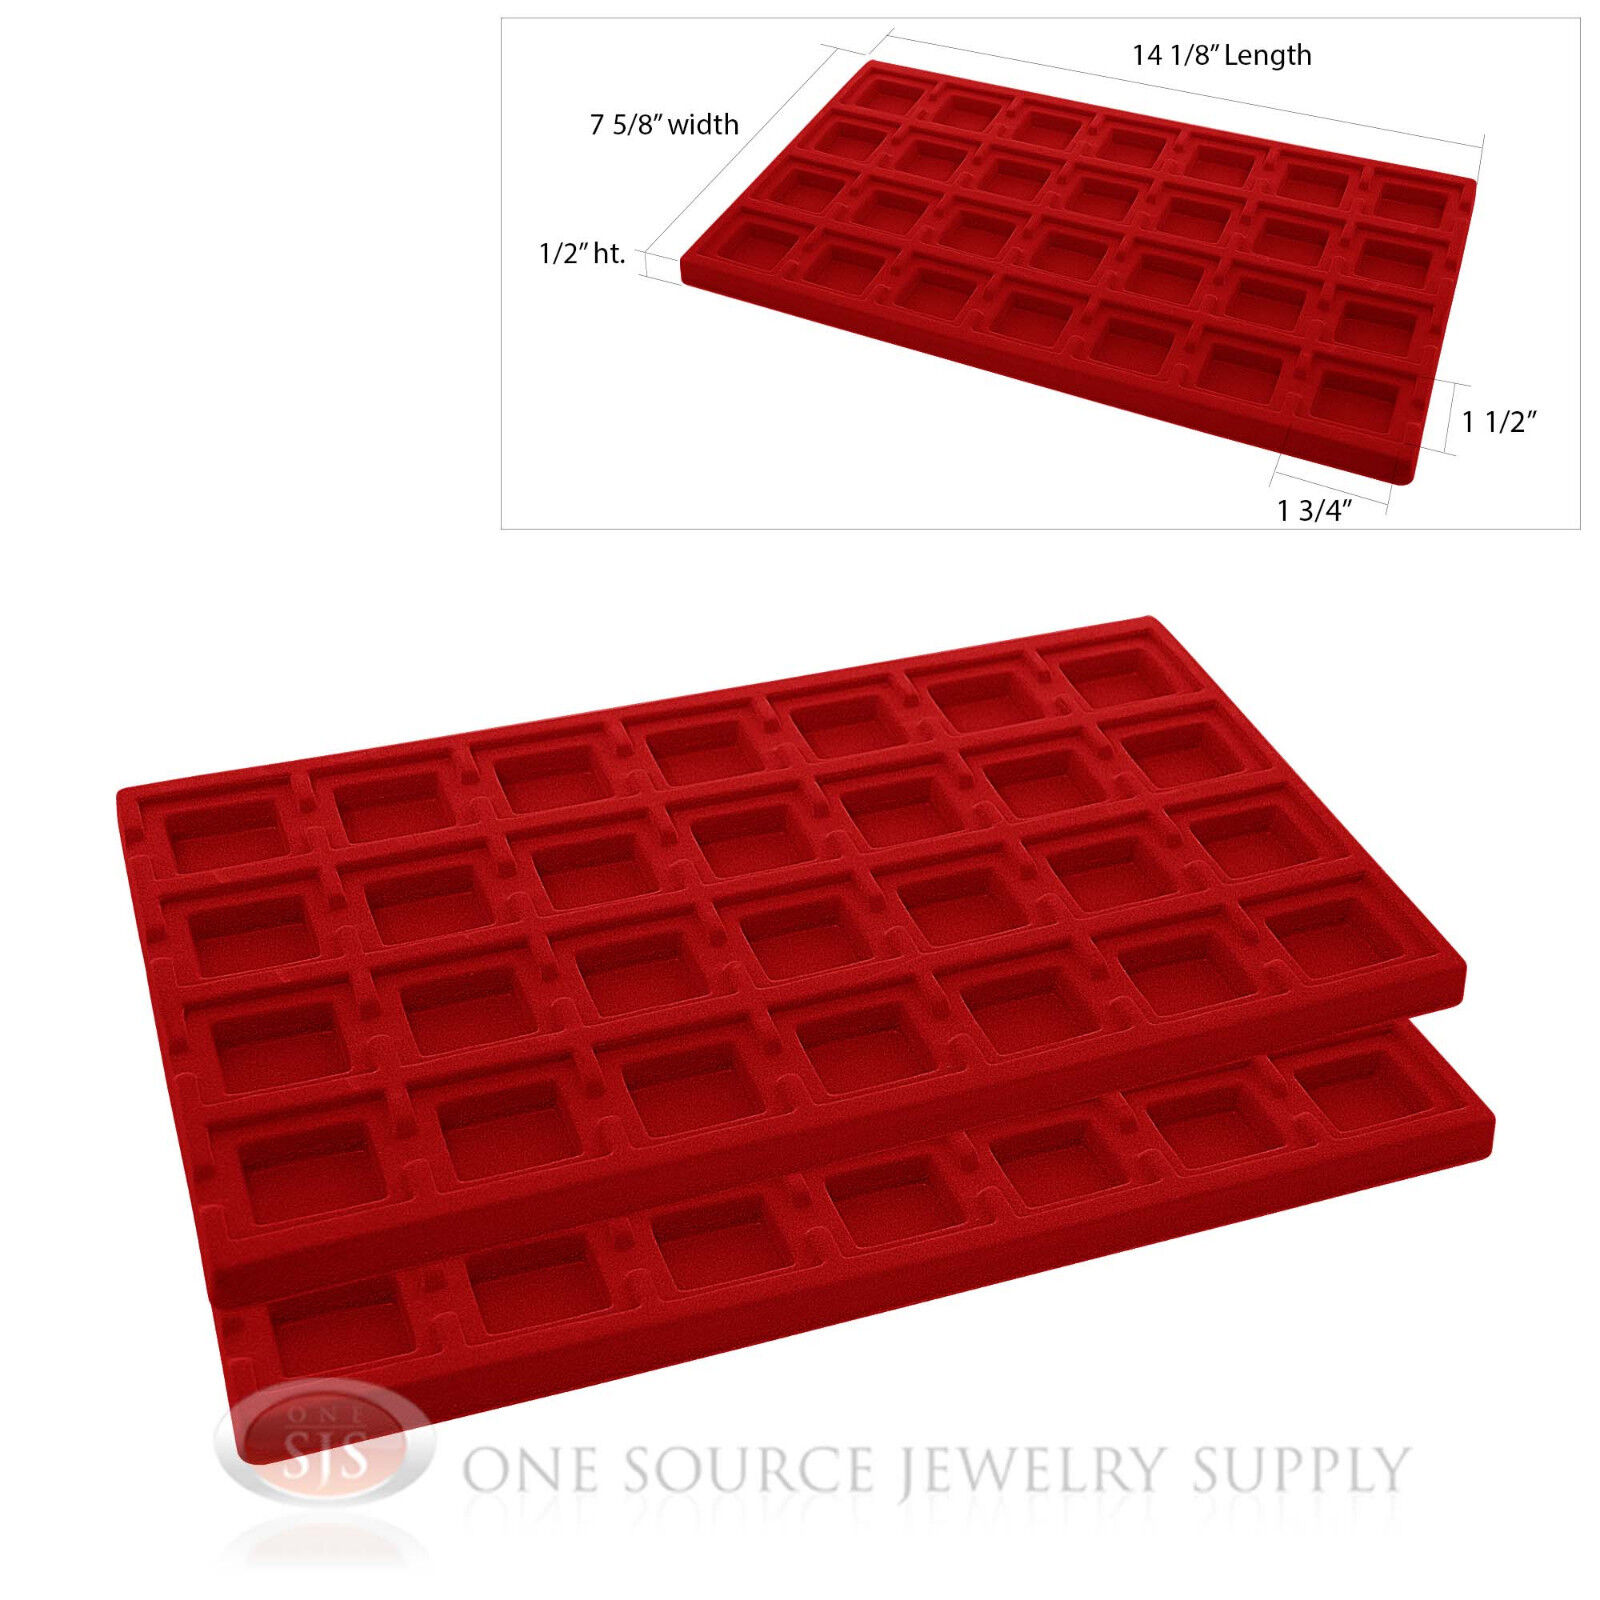 2 Red Insert Tray Liners W 28 Compartments Drawer